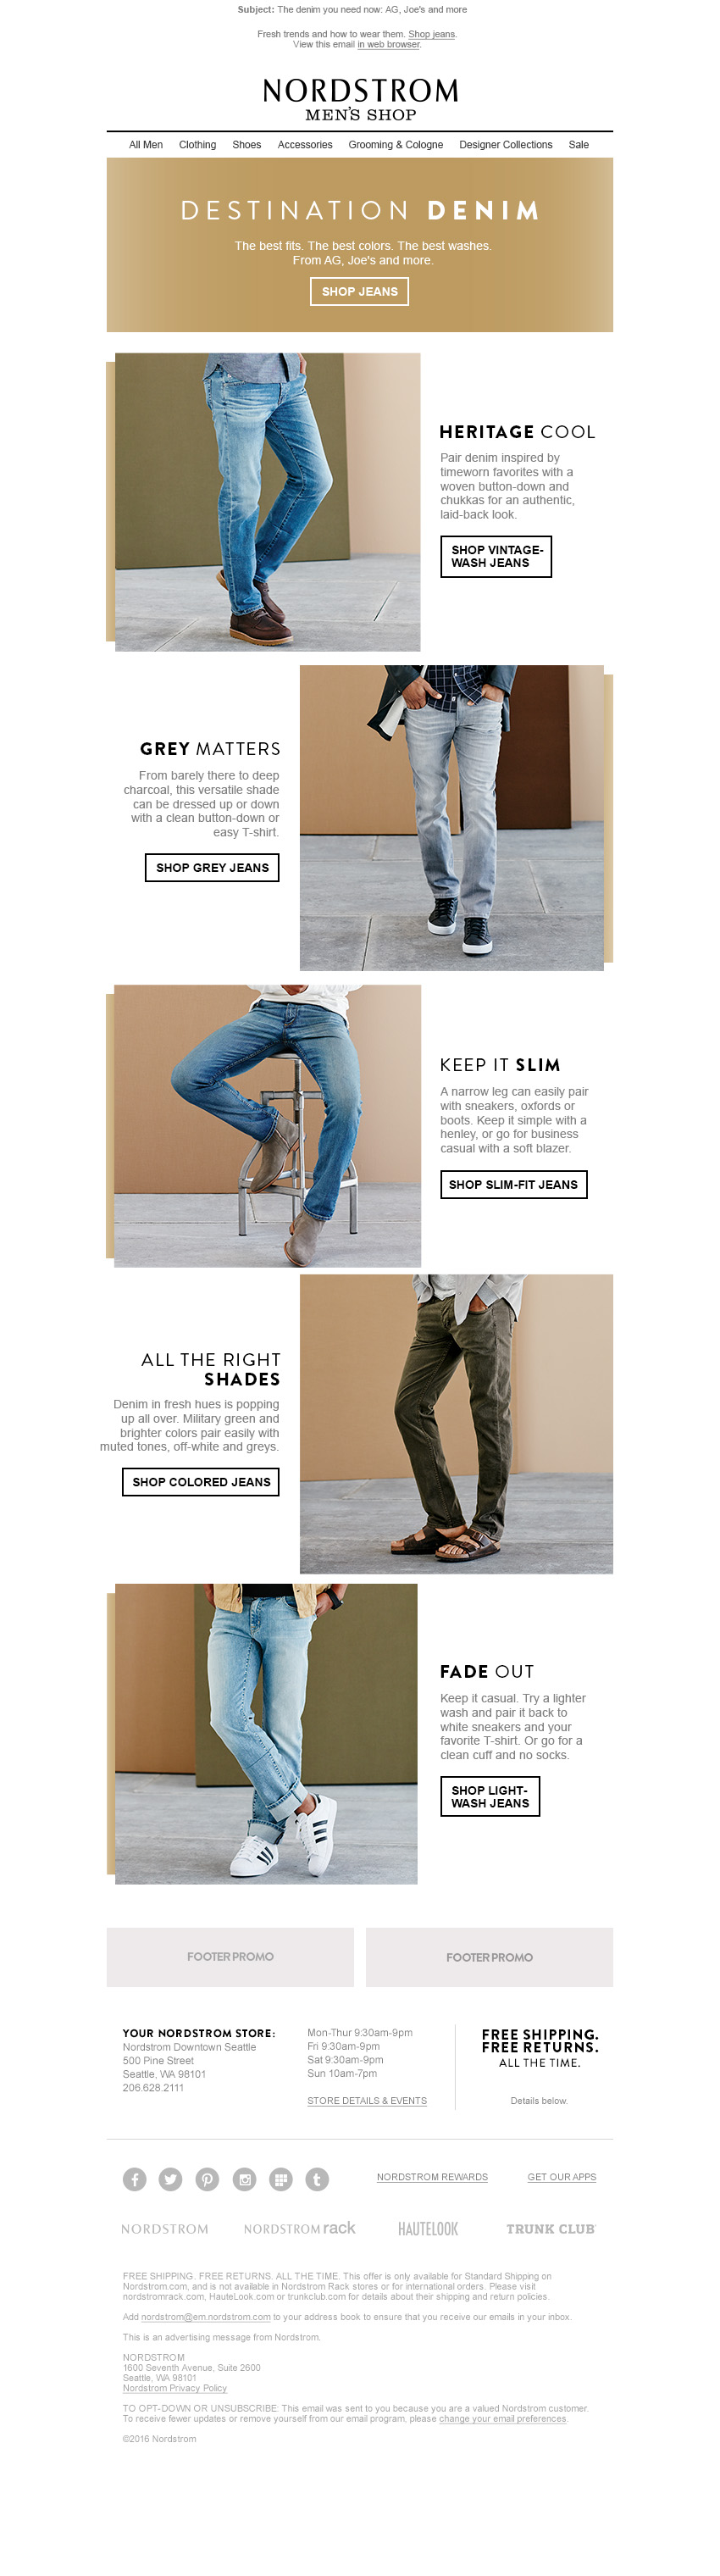 08_02.29.16_Mens_Denim_Email_Billboard+List_02.29.16_Mens_Denim_Landing_Page_Campaign_Sizes_2968.jpg